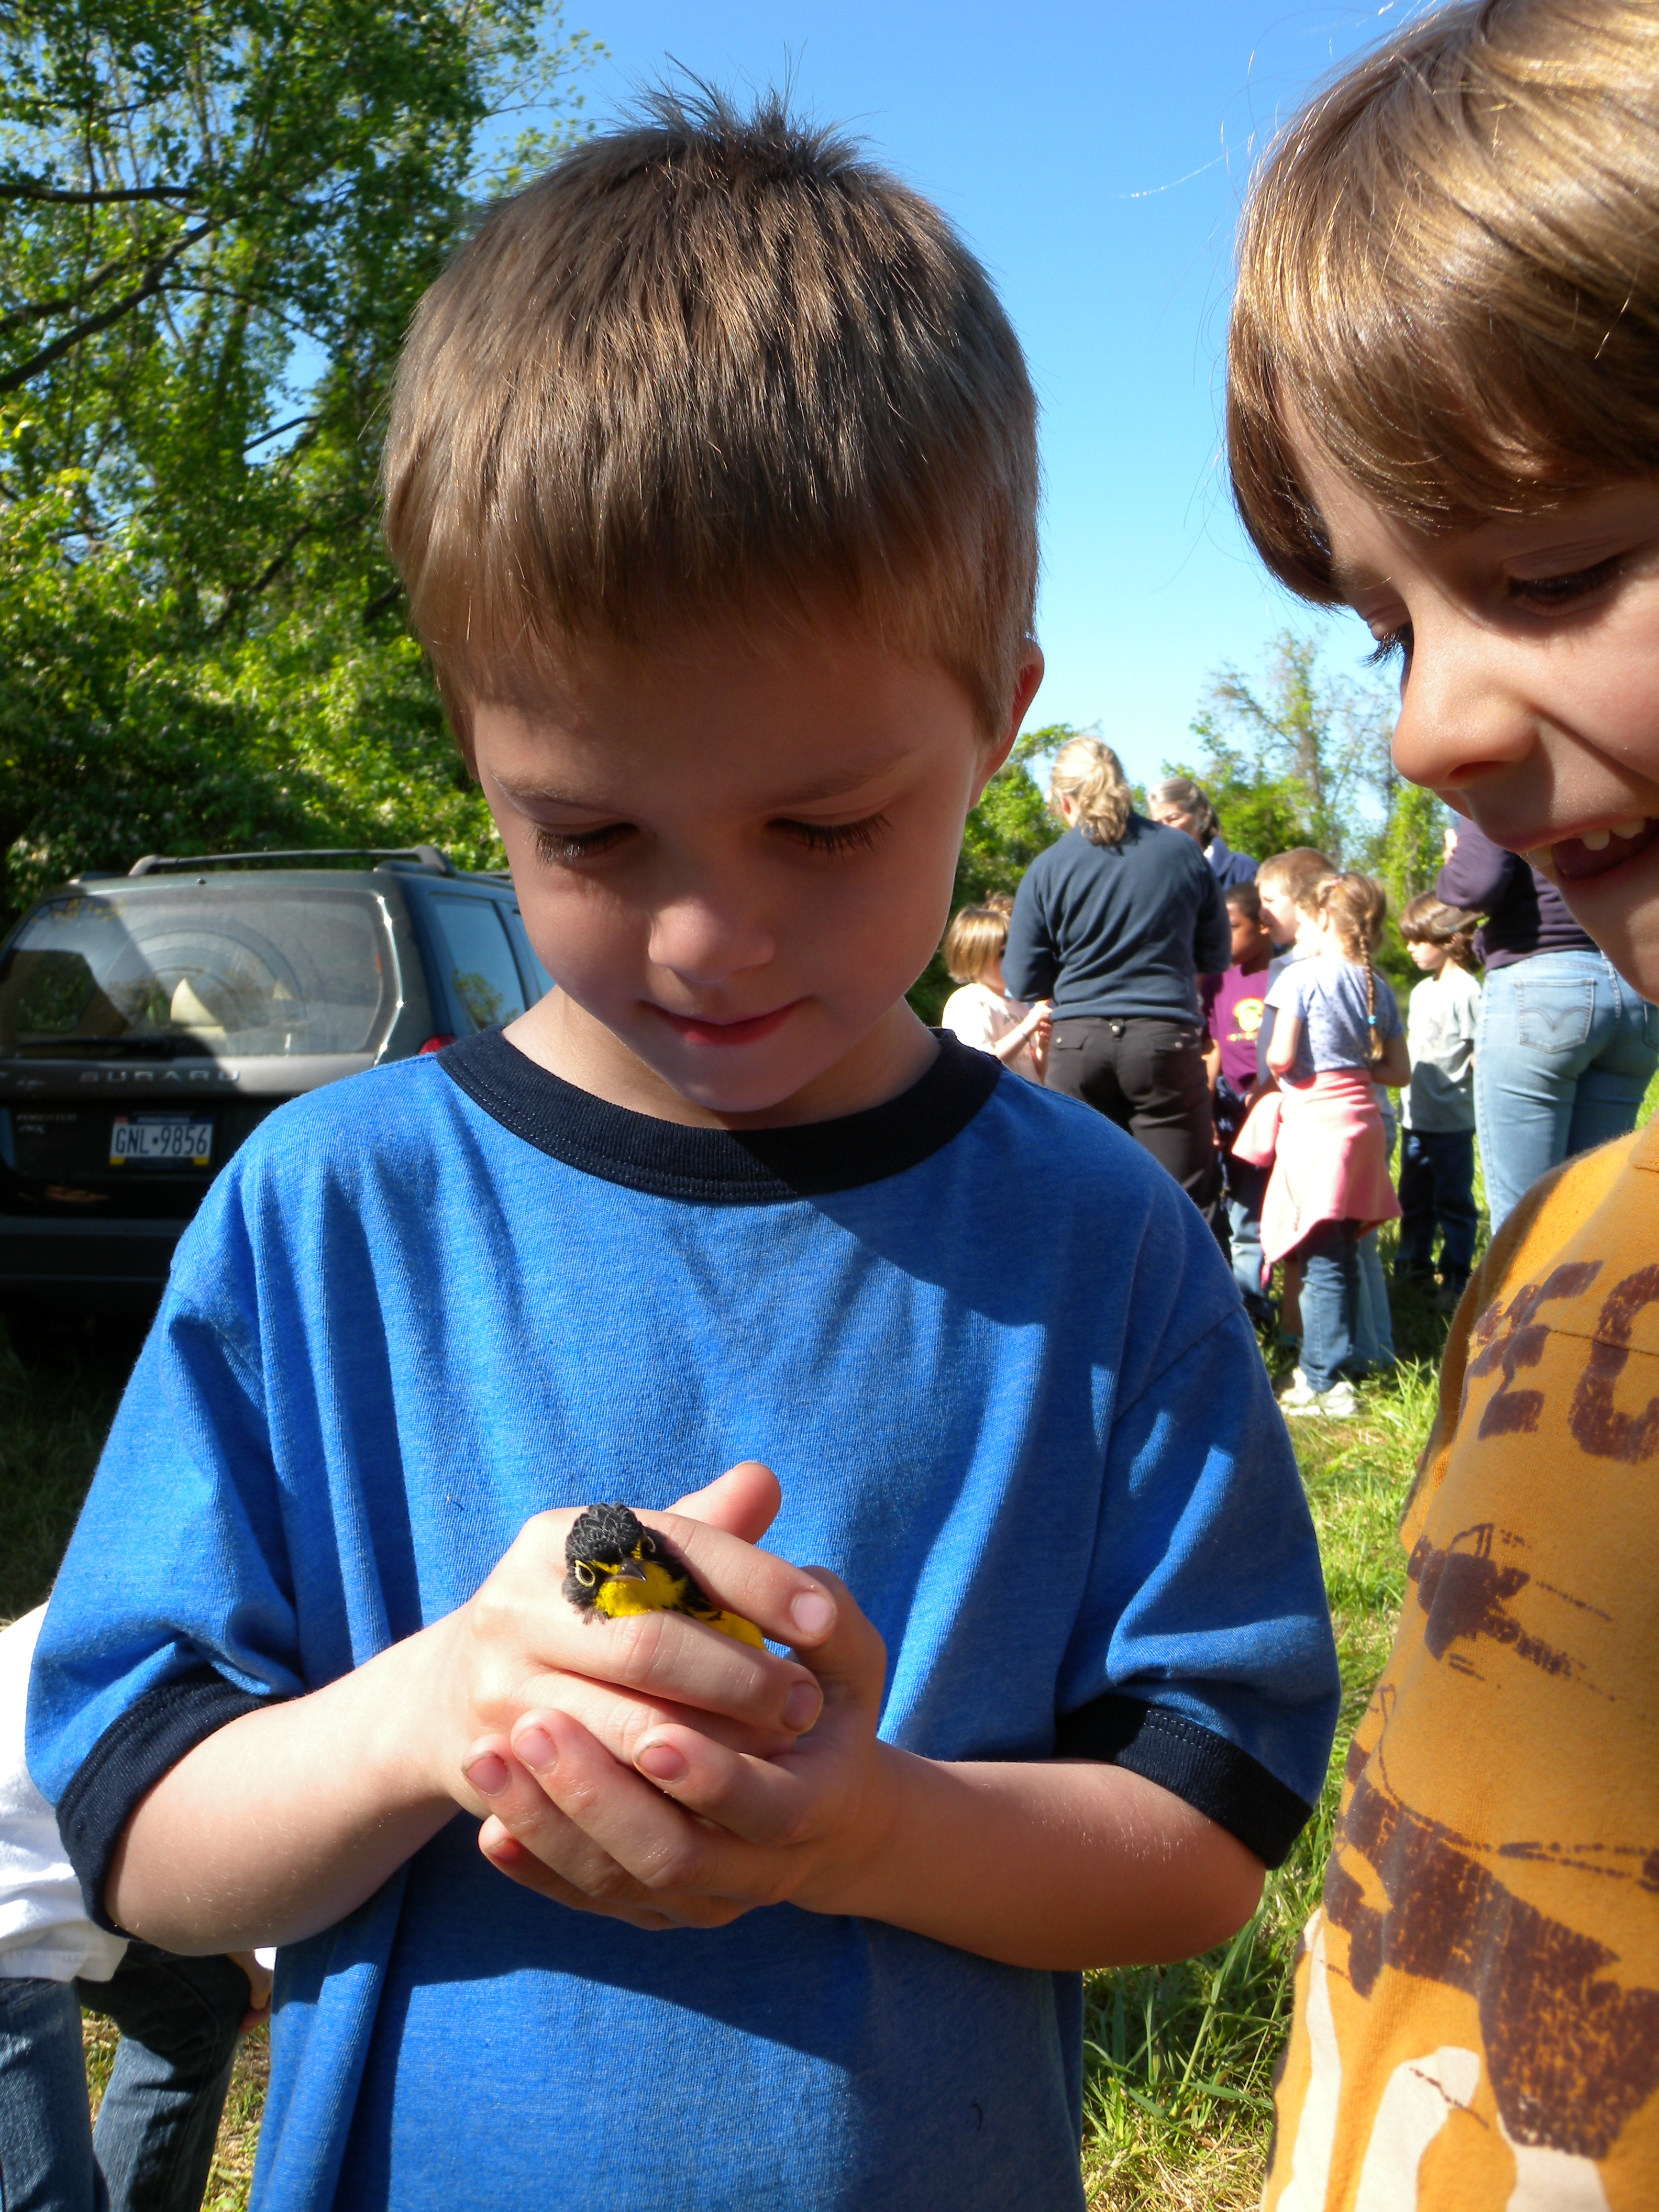 Westtown 1st grader holding Canada Warbler.  Photo by Blake Goll